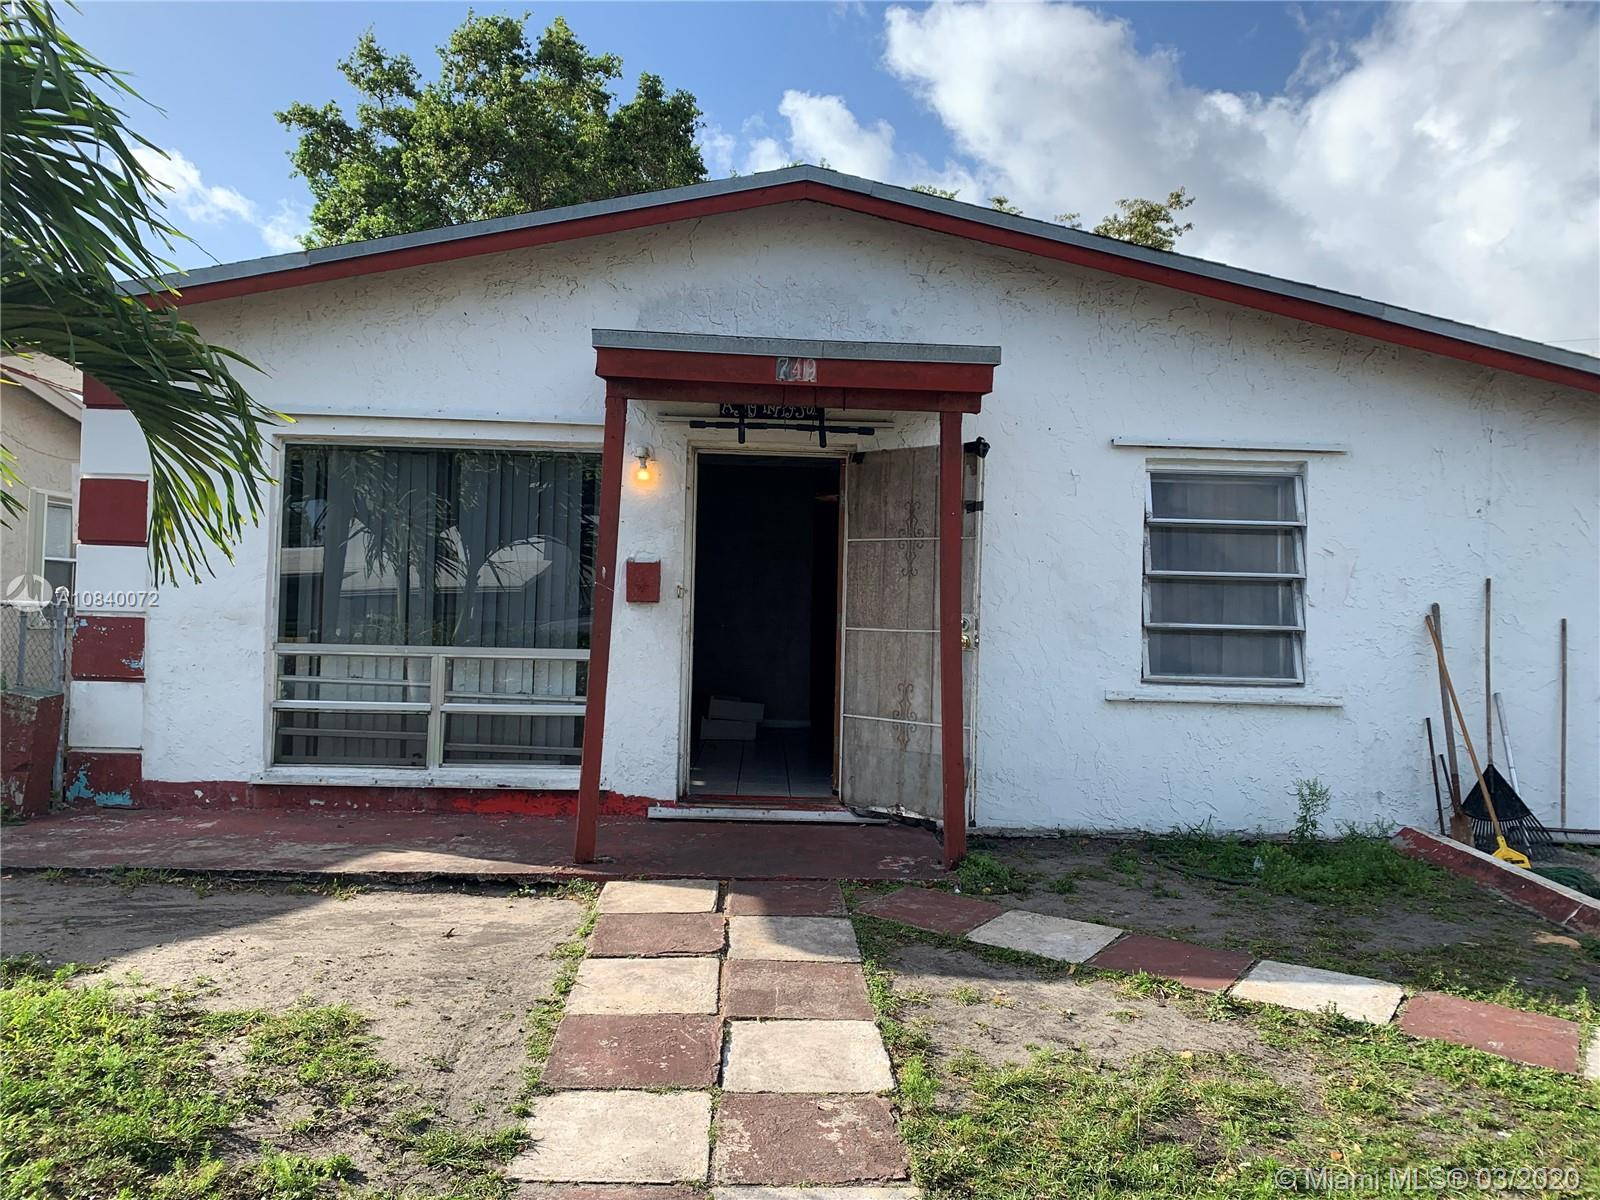 Looking for a Great Deal? This home needs TLC, mostly cosmetic repairs. Has great bones! Bring your tool belt and let your imagination run wild. The fenced in yard has plenty of room for a swimming pool/spa & shed. The neighborhood supports the improvements. The price is set according to the work that needs to be done. Similar 4 bedroom properties redone in this neighborhood recently sold between $325k-$365k. This house is only a few blocks from one of the largest new shopping centers in South Florida.  Parks and shopping are close by. No HOA. A must see. Don't let this excellent opportunity pass you by!